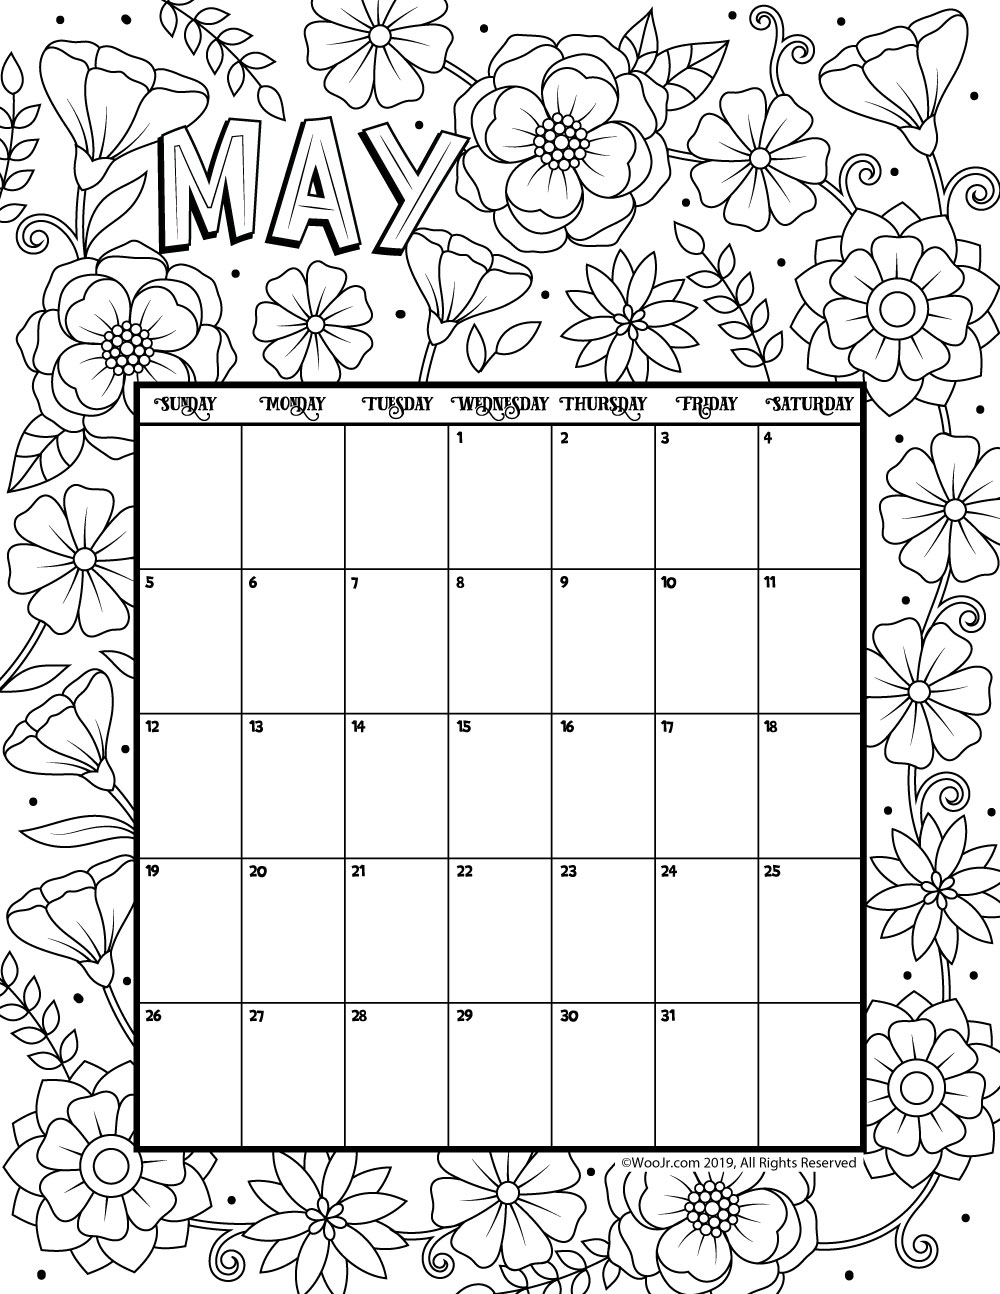 may 2019 coloring calendar woo jr kids activities